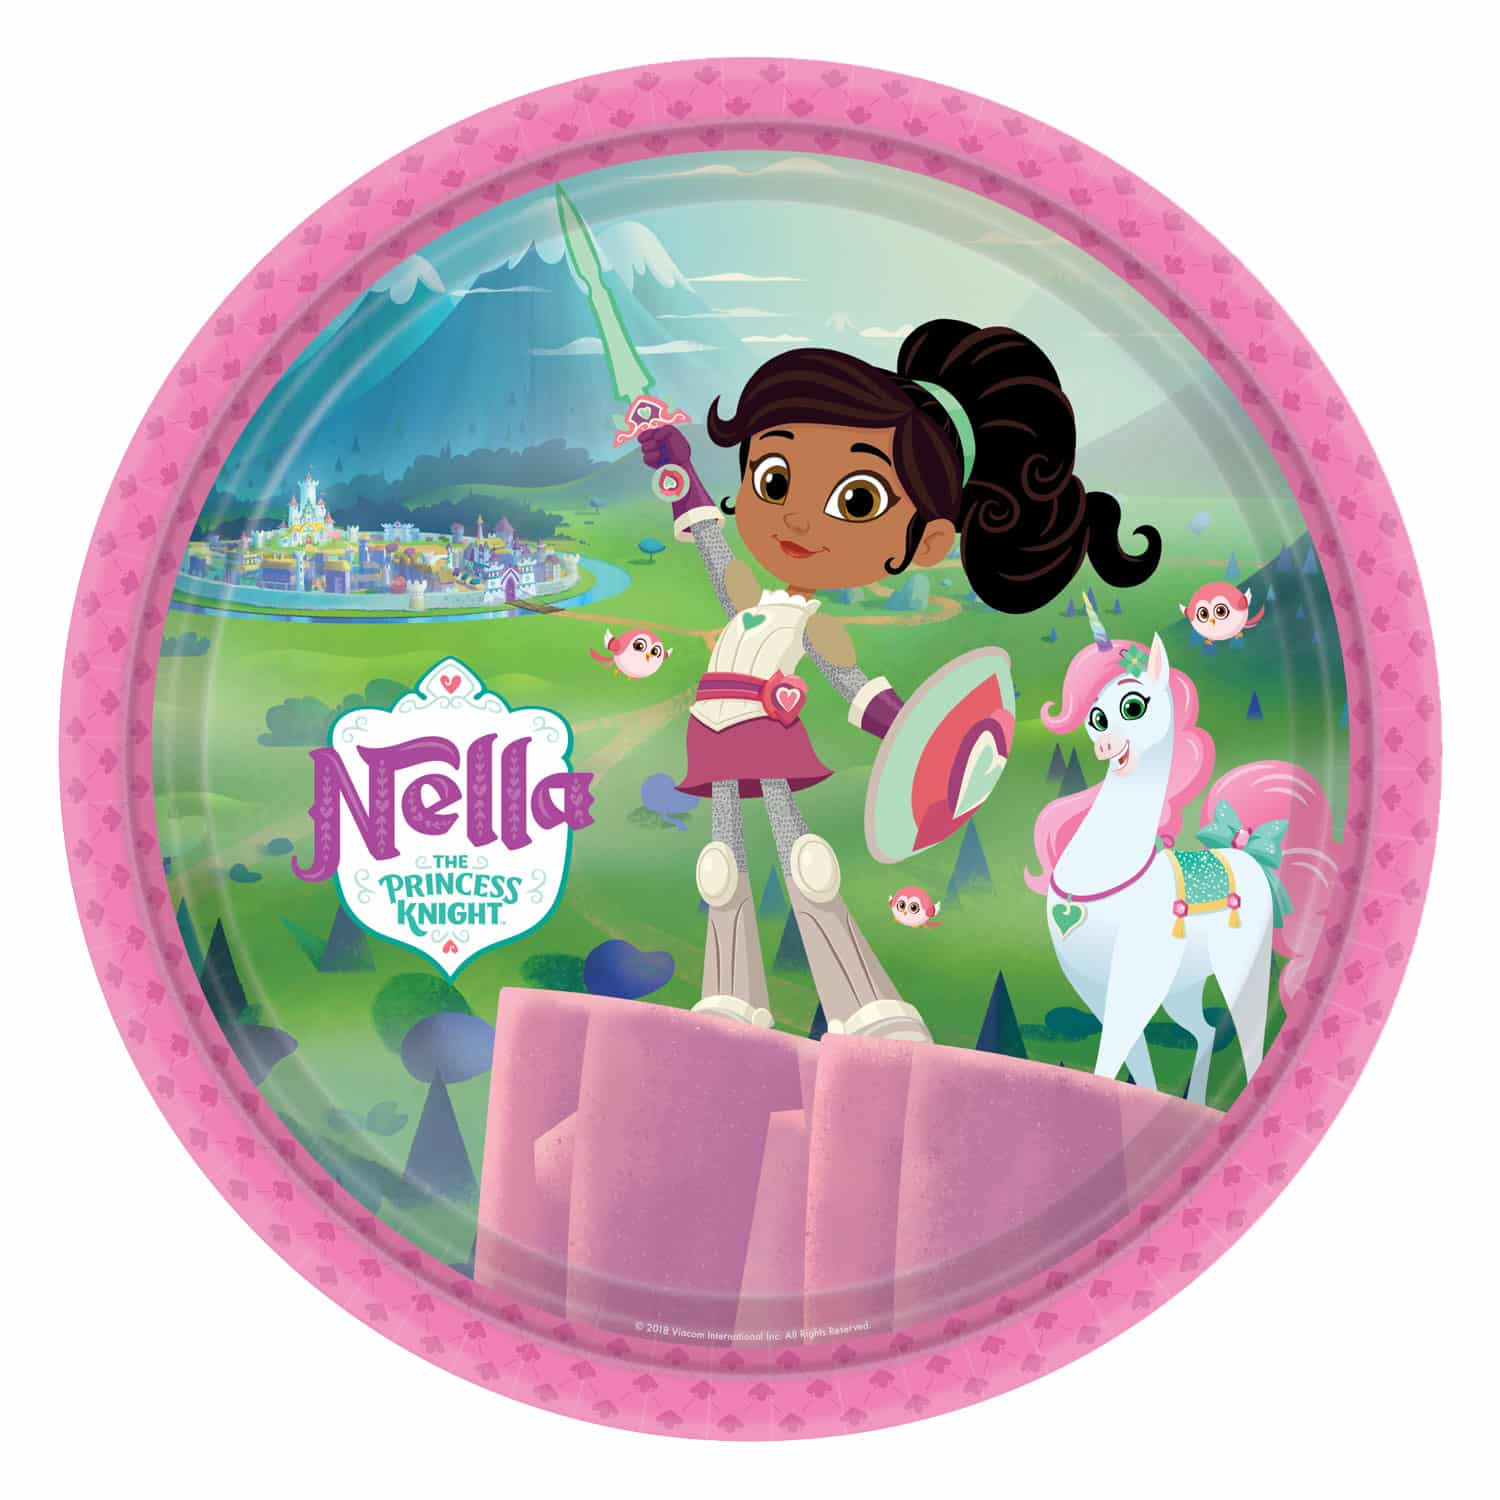 23b8dacb5a80 Nella The Princess Knight Party Paper Plates - 23cm (Pk 8)- Next Day ...